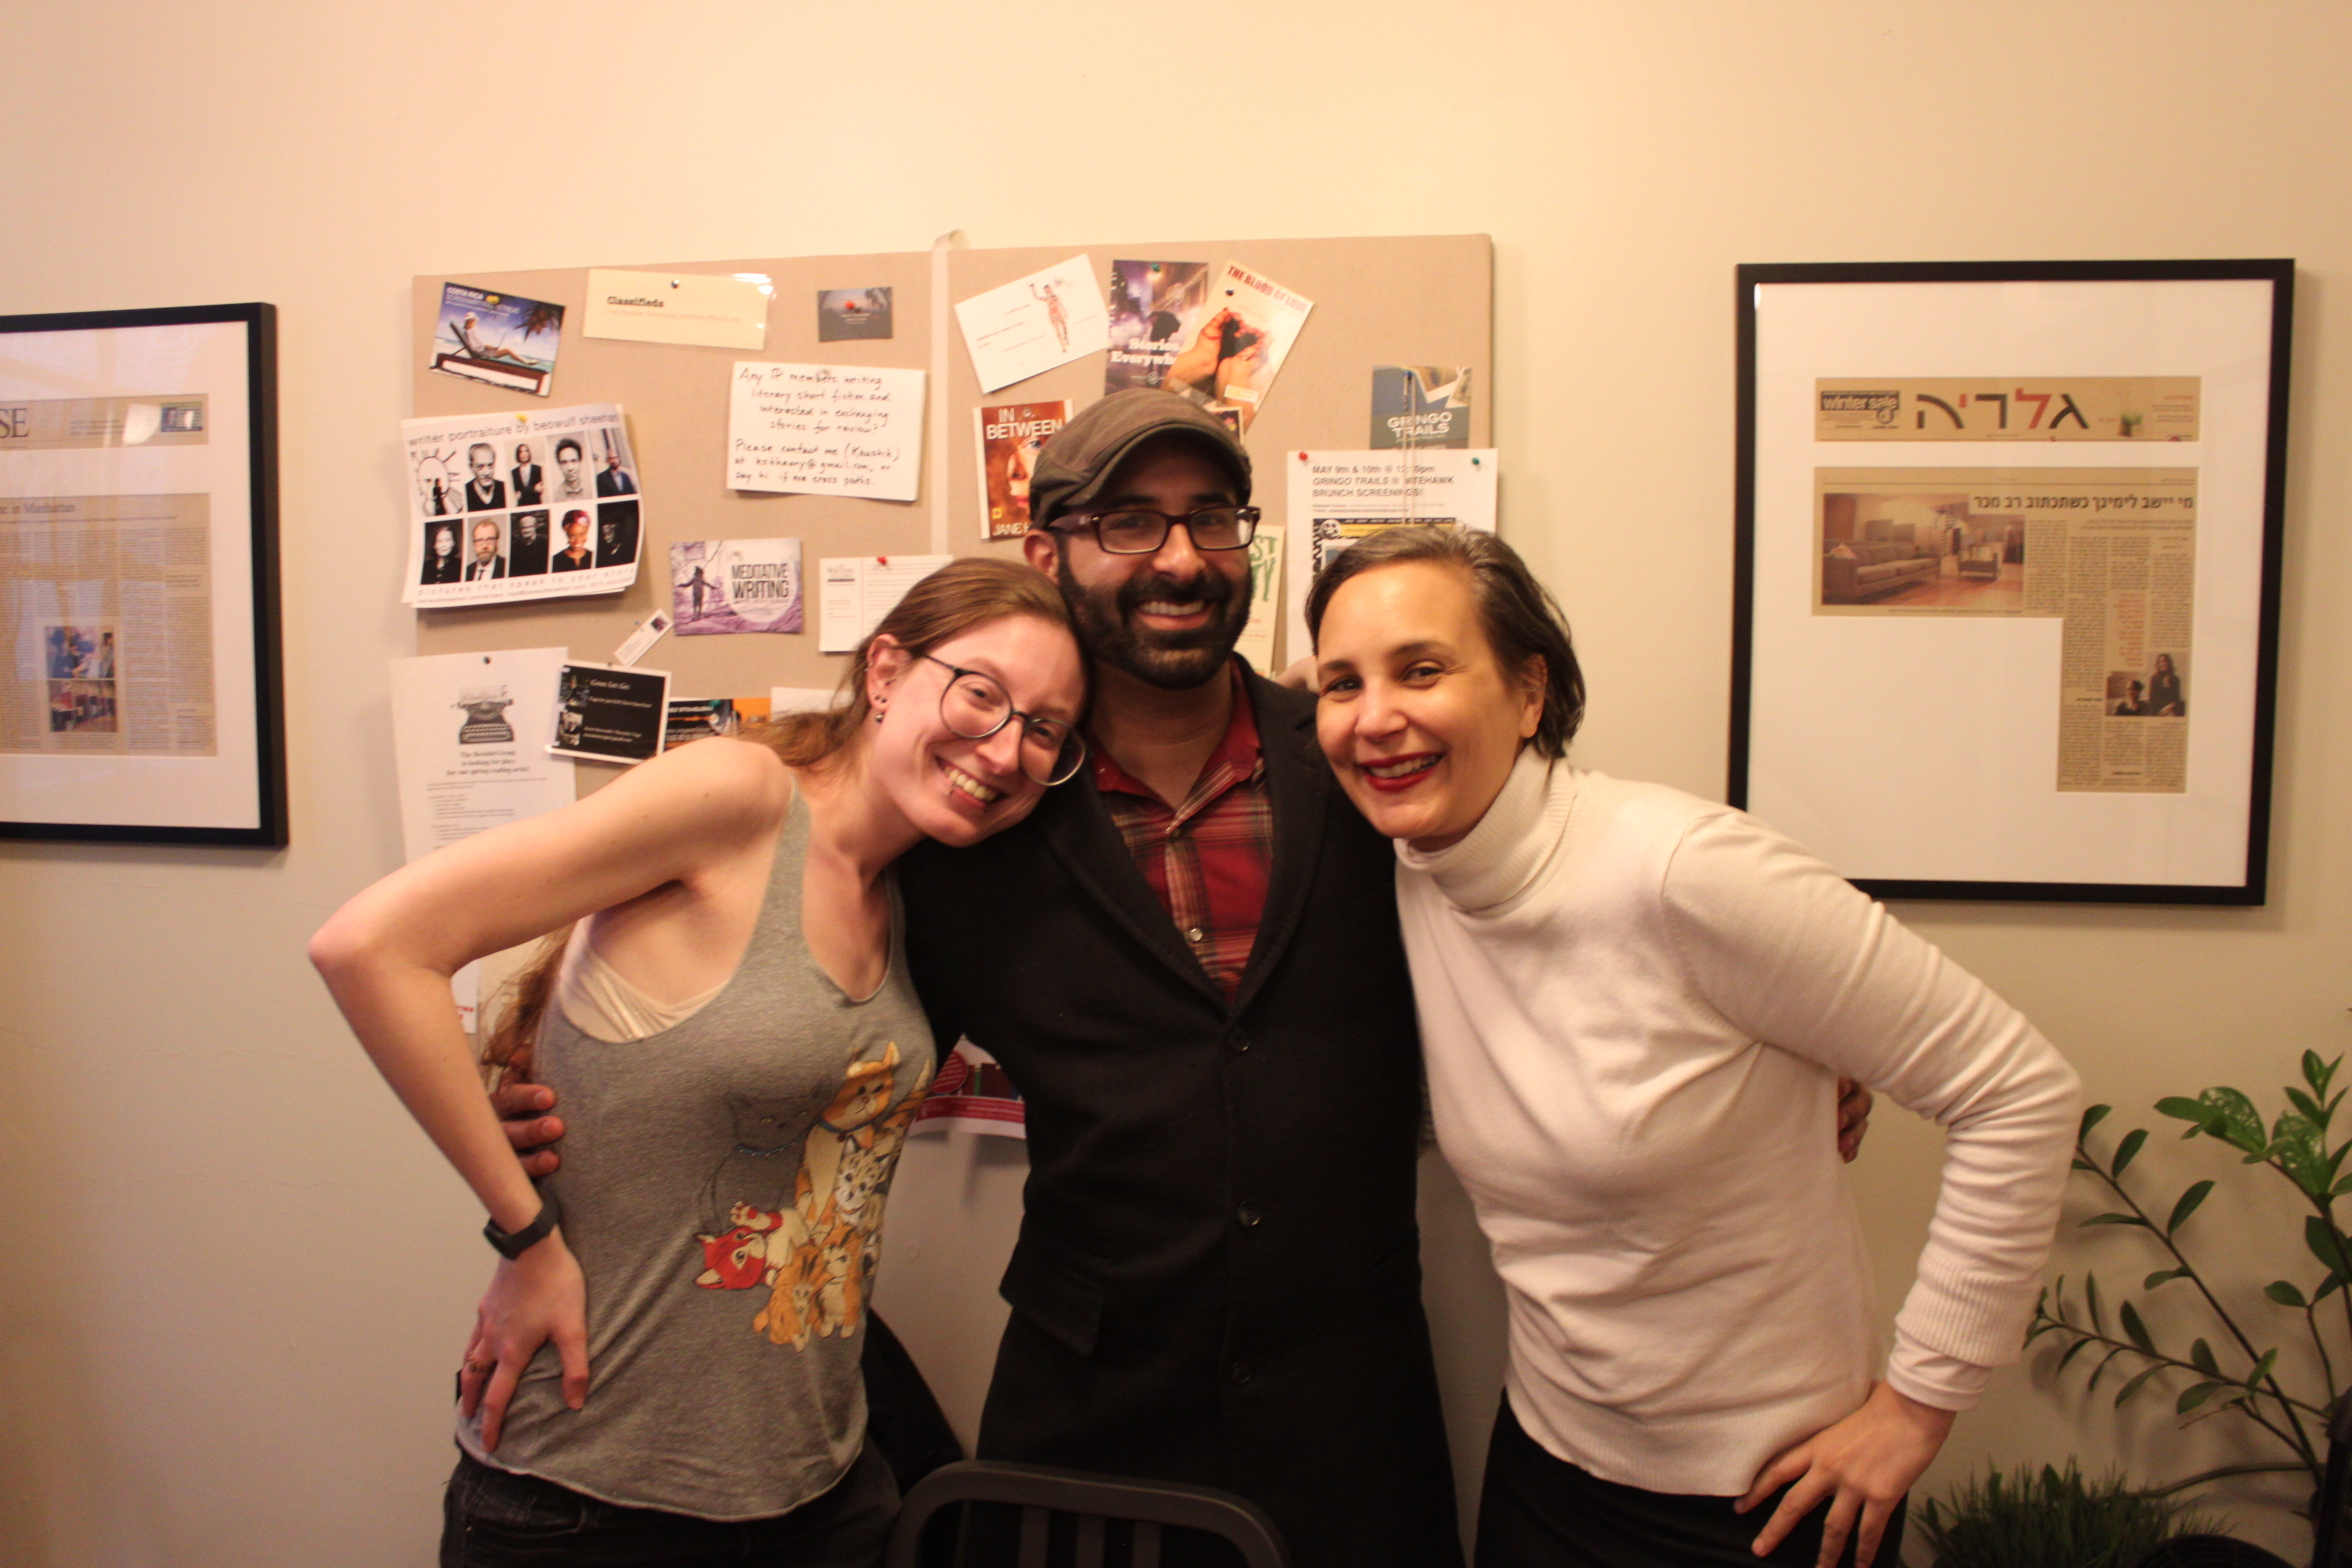 R to L: Ilana Masad, Eric Smith, & resident photograph Kirsten Major